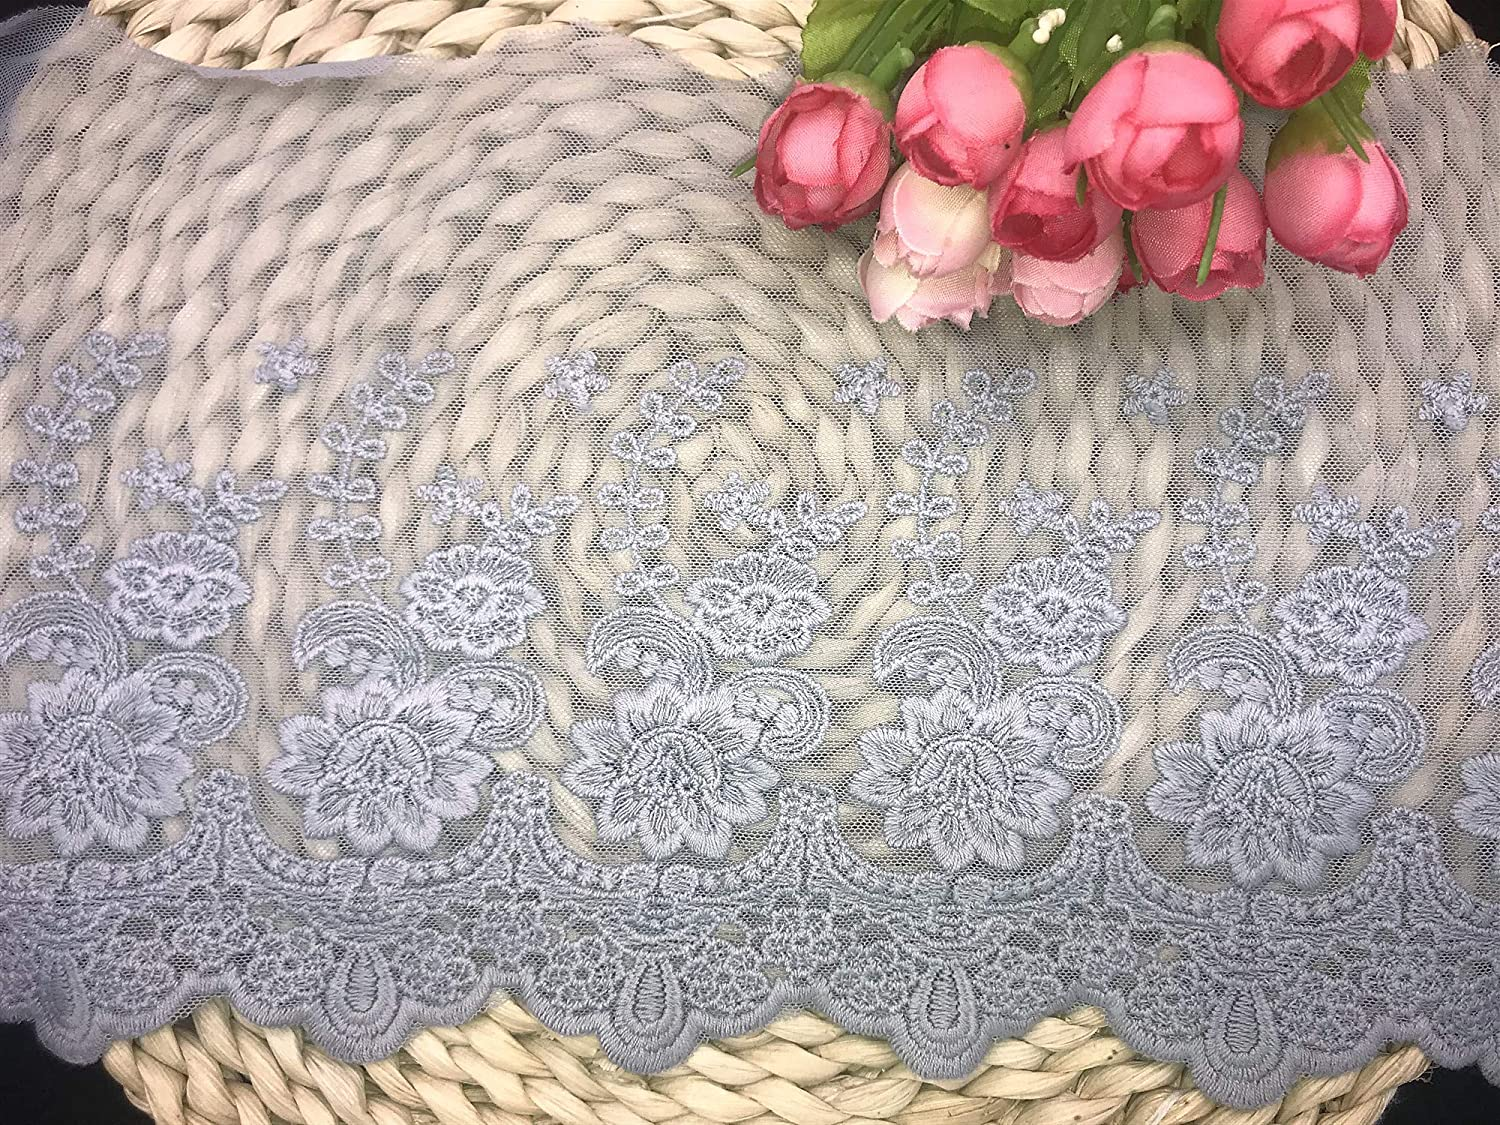 Import 21CM Width Europe Rose Wedding Lac Max 73% OFF Embroidery Inelastic Applique